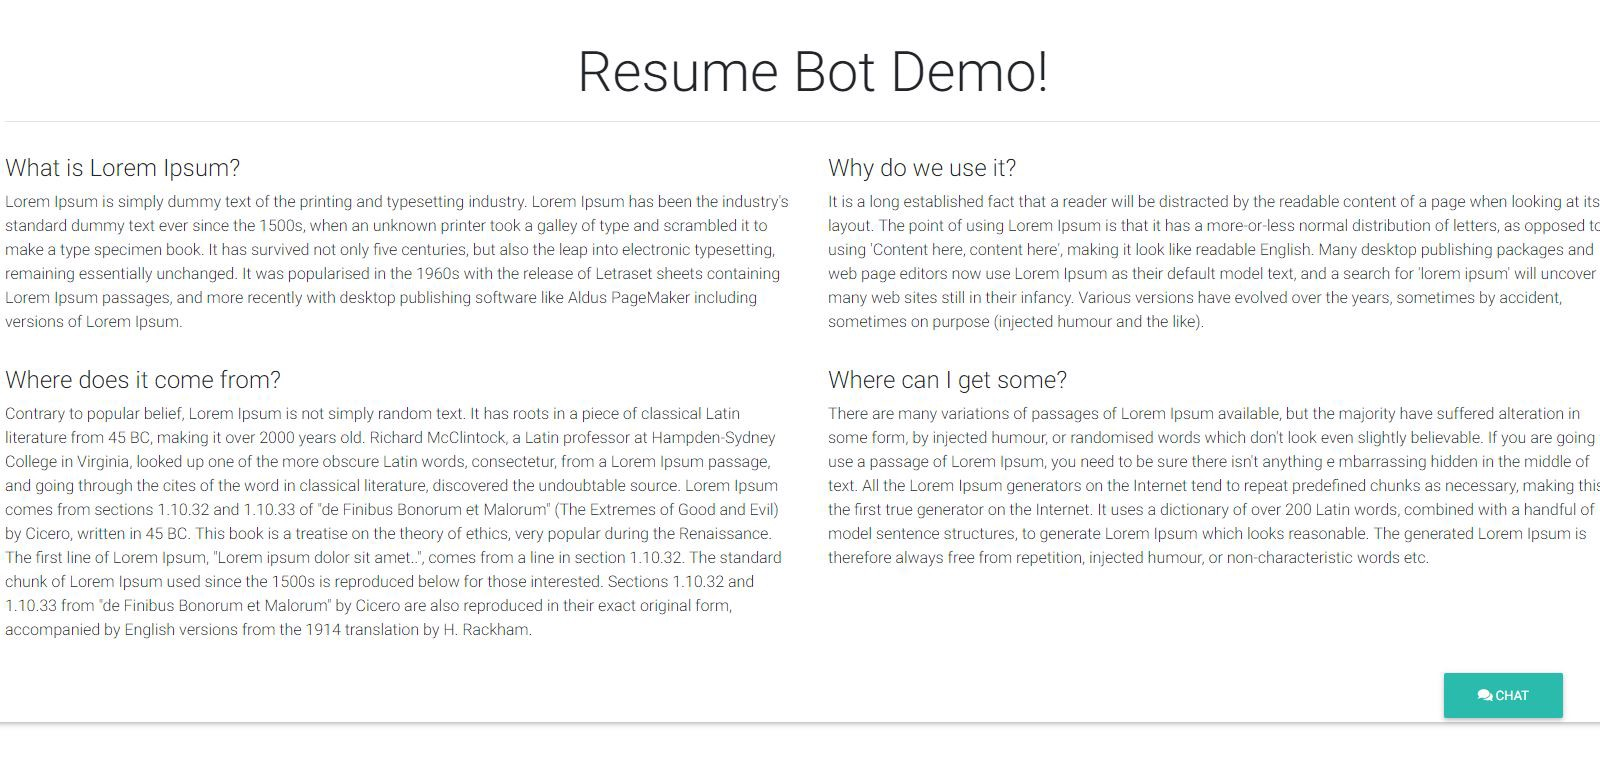 ResumeBot — Develop Serverless Chatbot in minutes for your